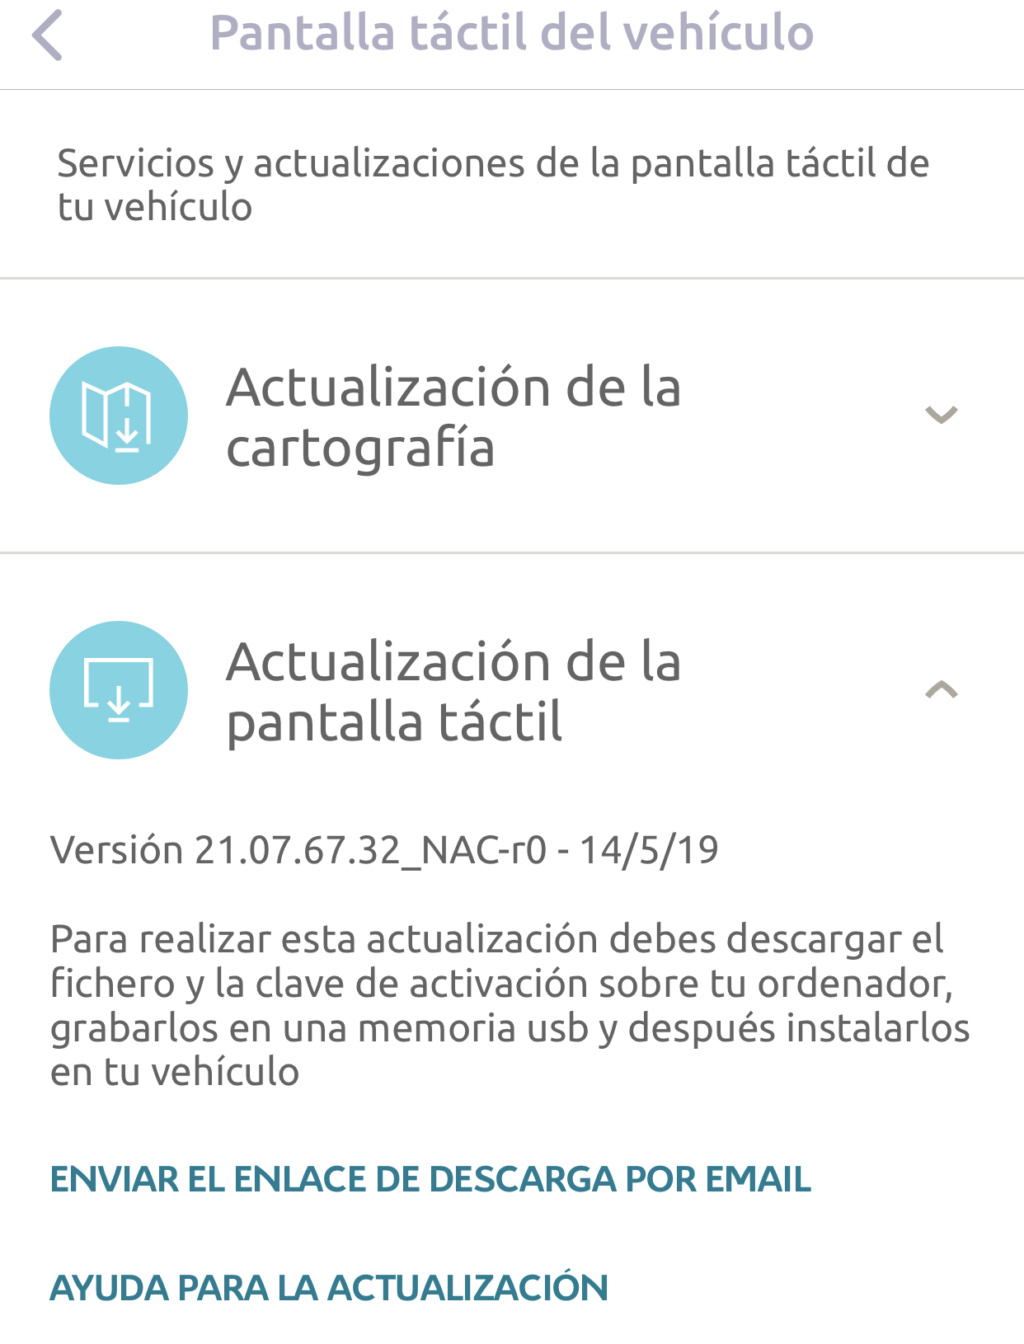 NUEVA VERSION FIRMWARE 21.08.22.32_NAC-r1  B65da810